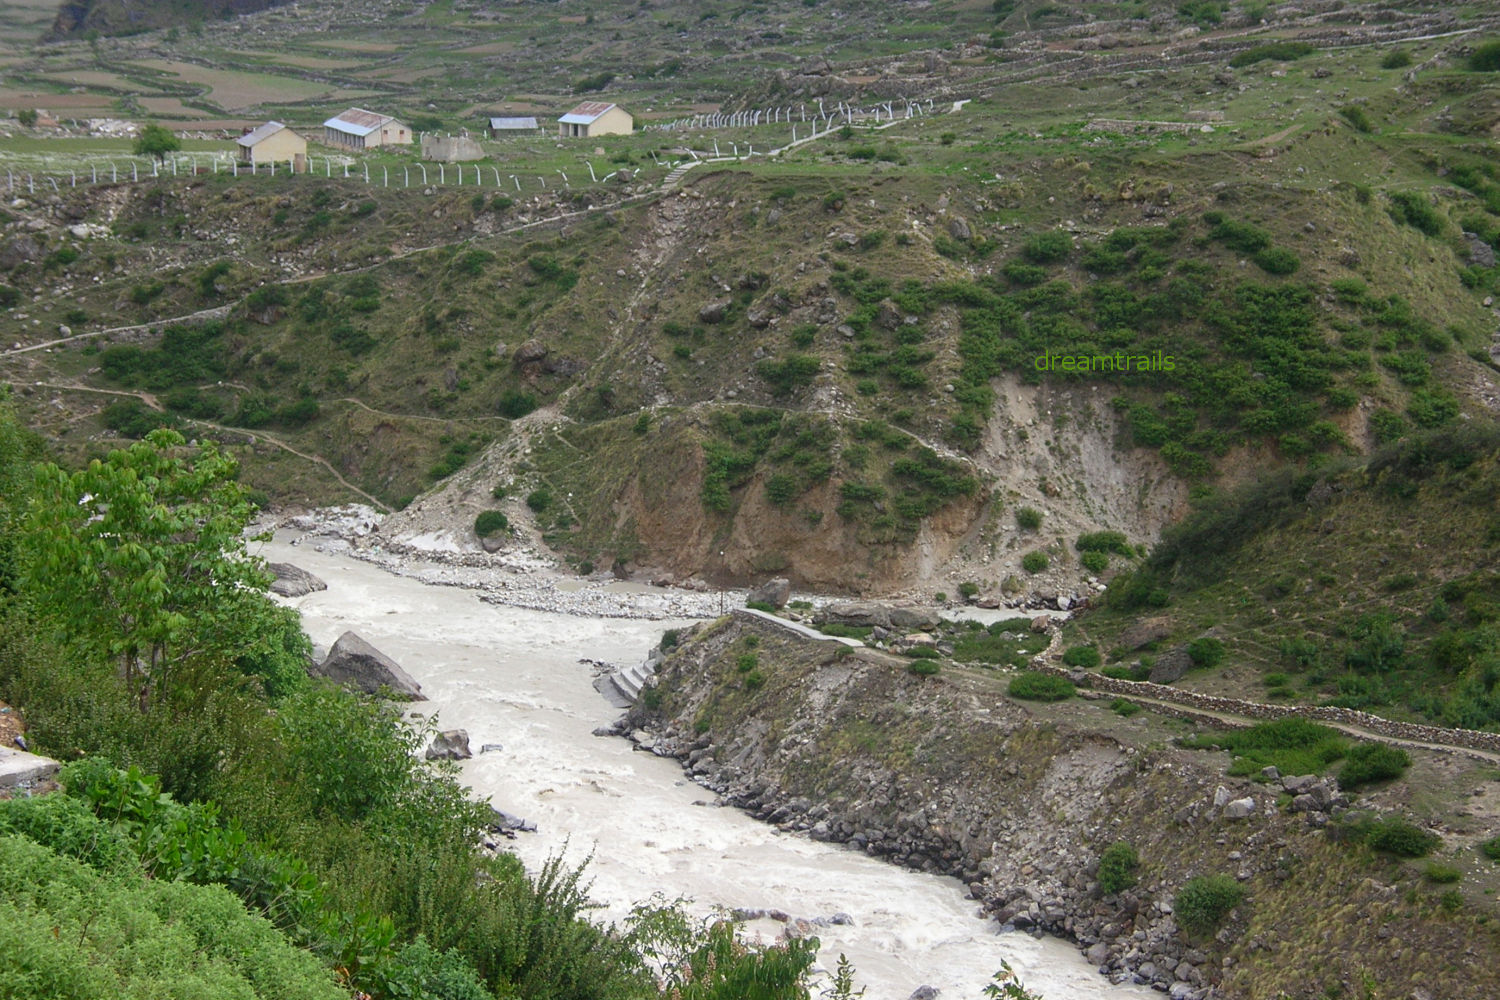 Confluence of River Saraswati and Alaknanda at Mana